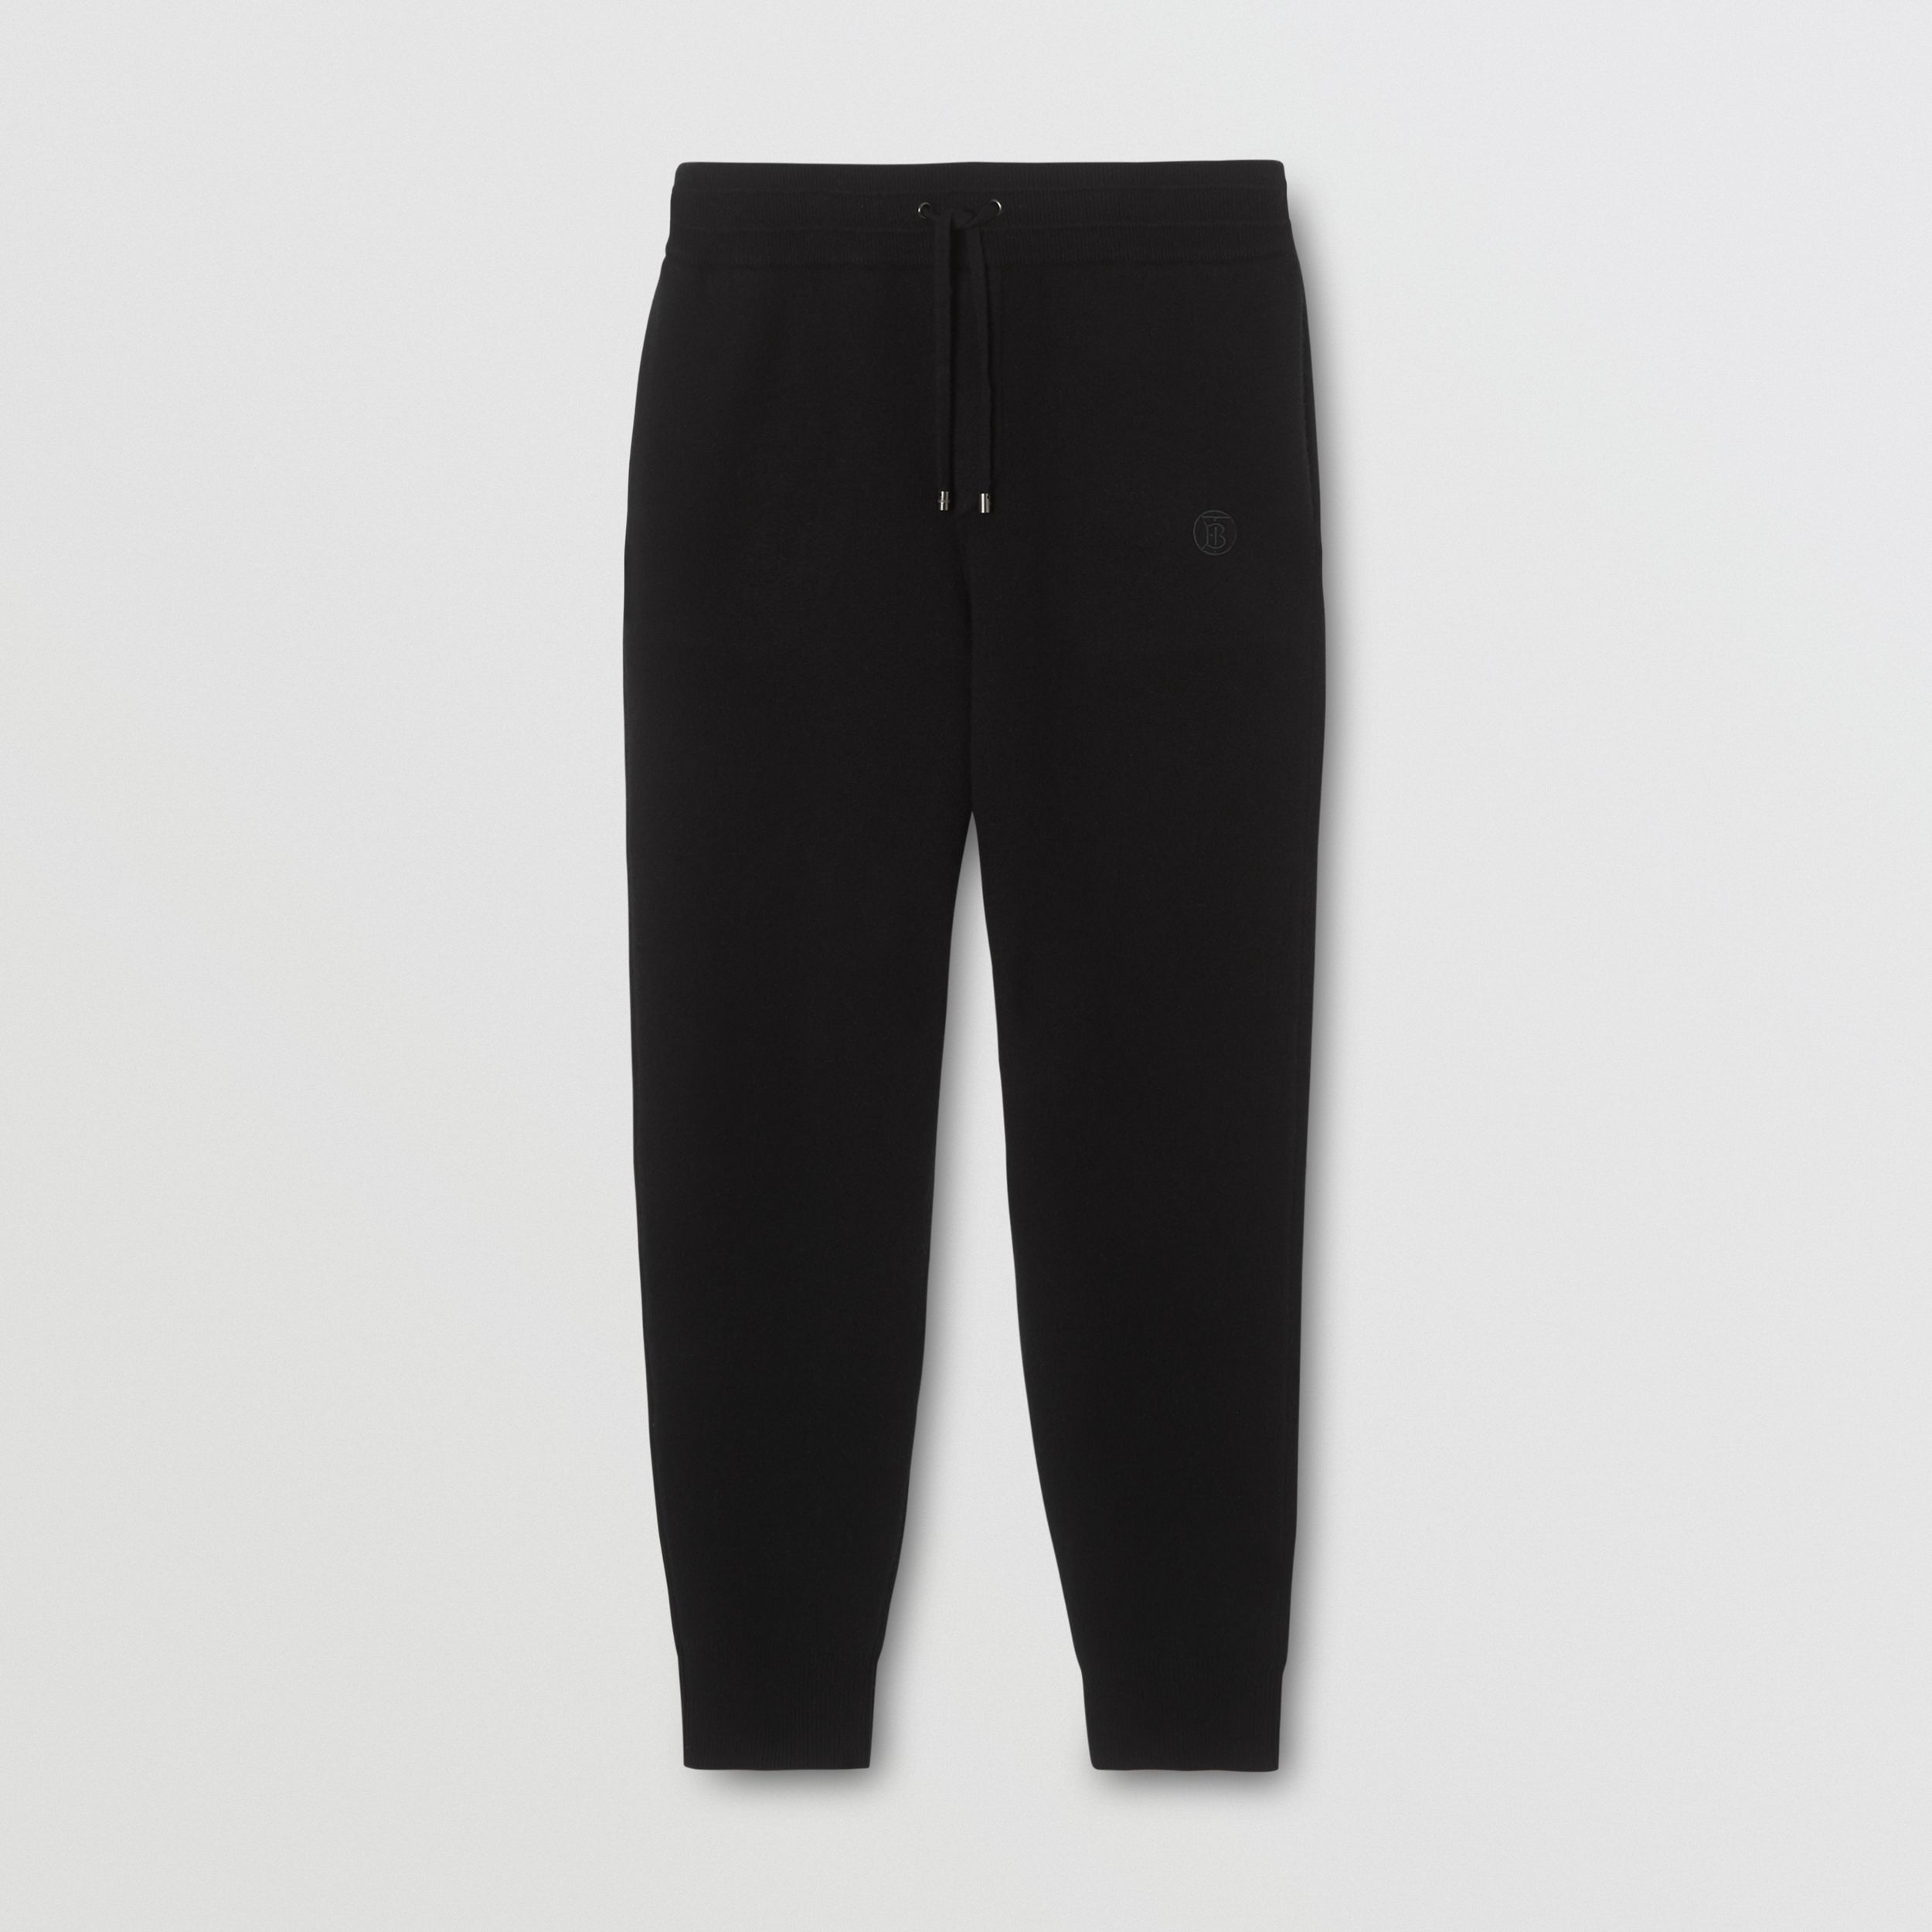 Monogram Motif Cashmere Blend Trackpants in Black - Men | Burberry - 4